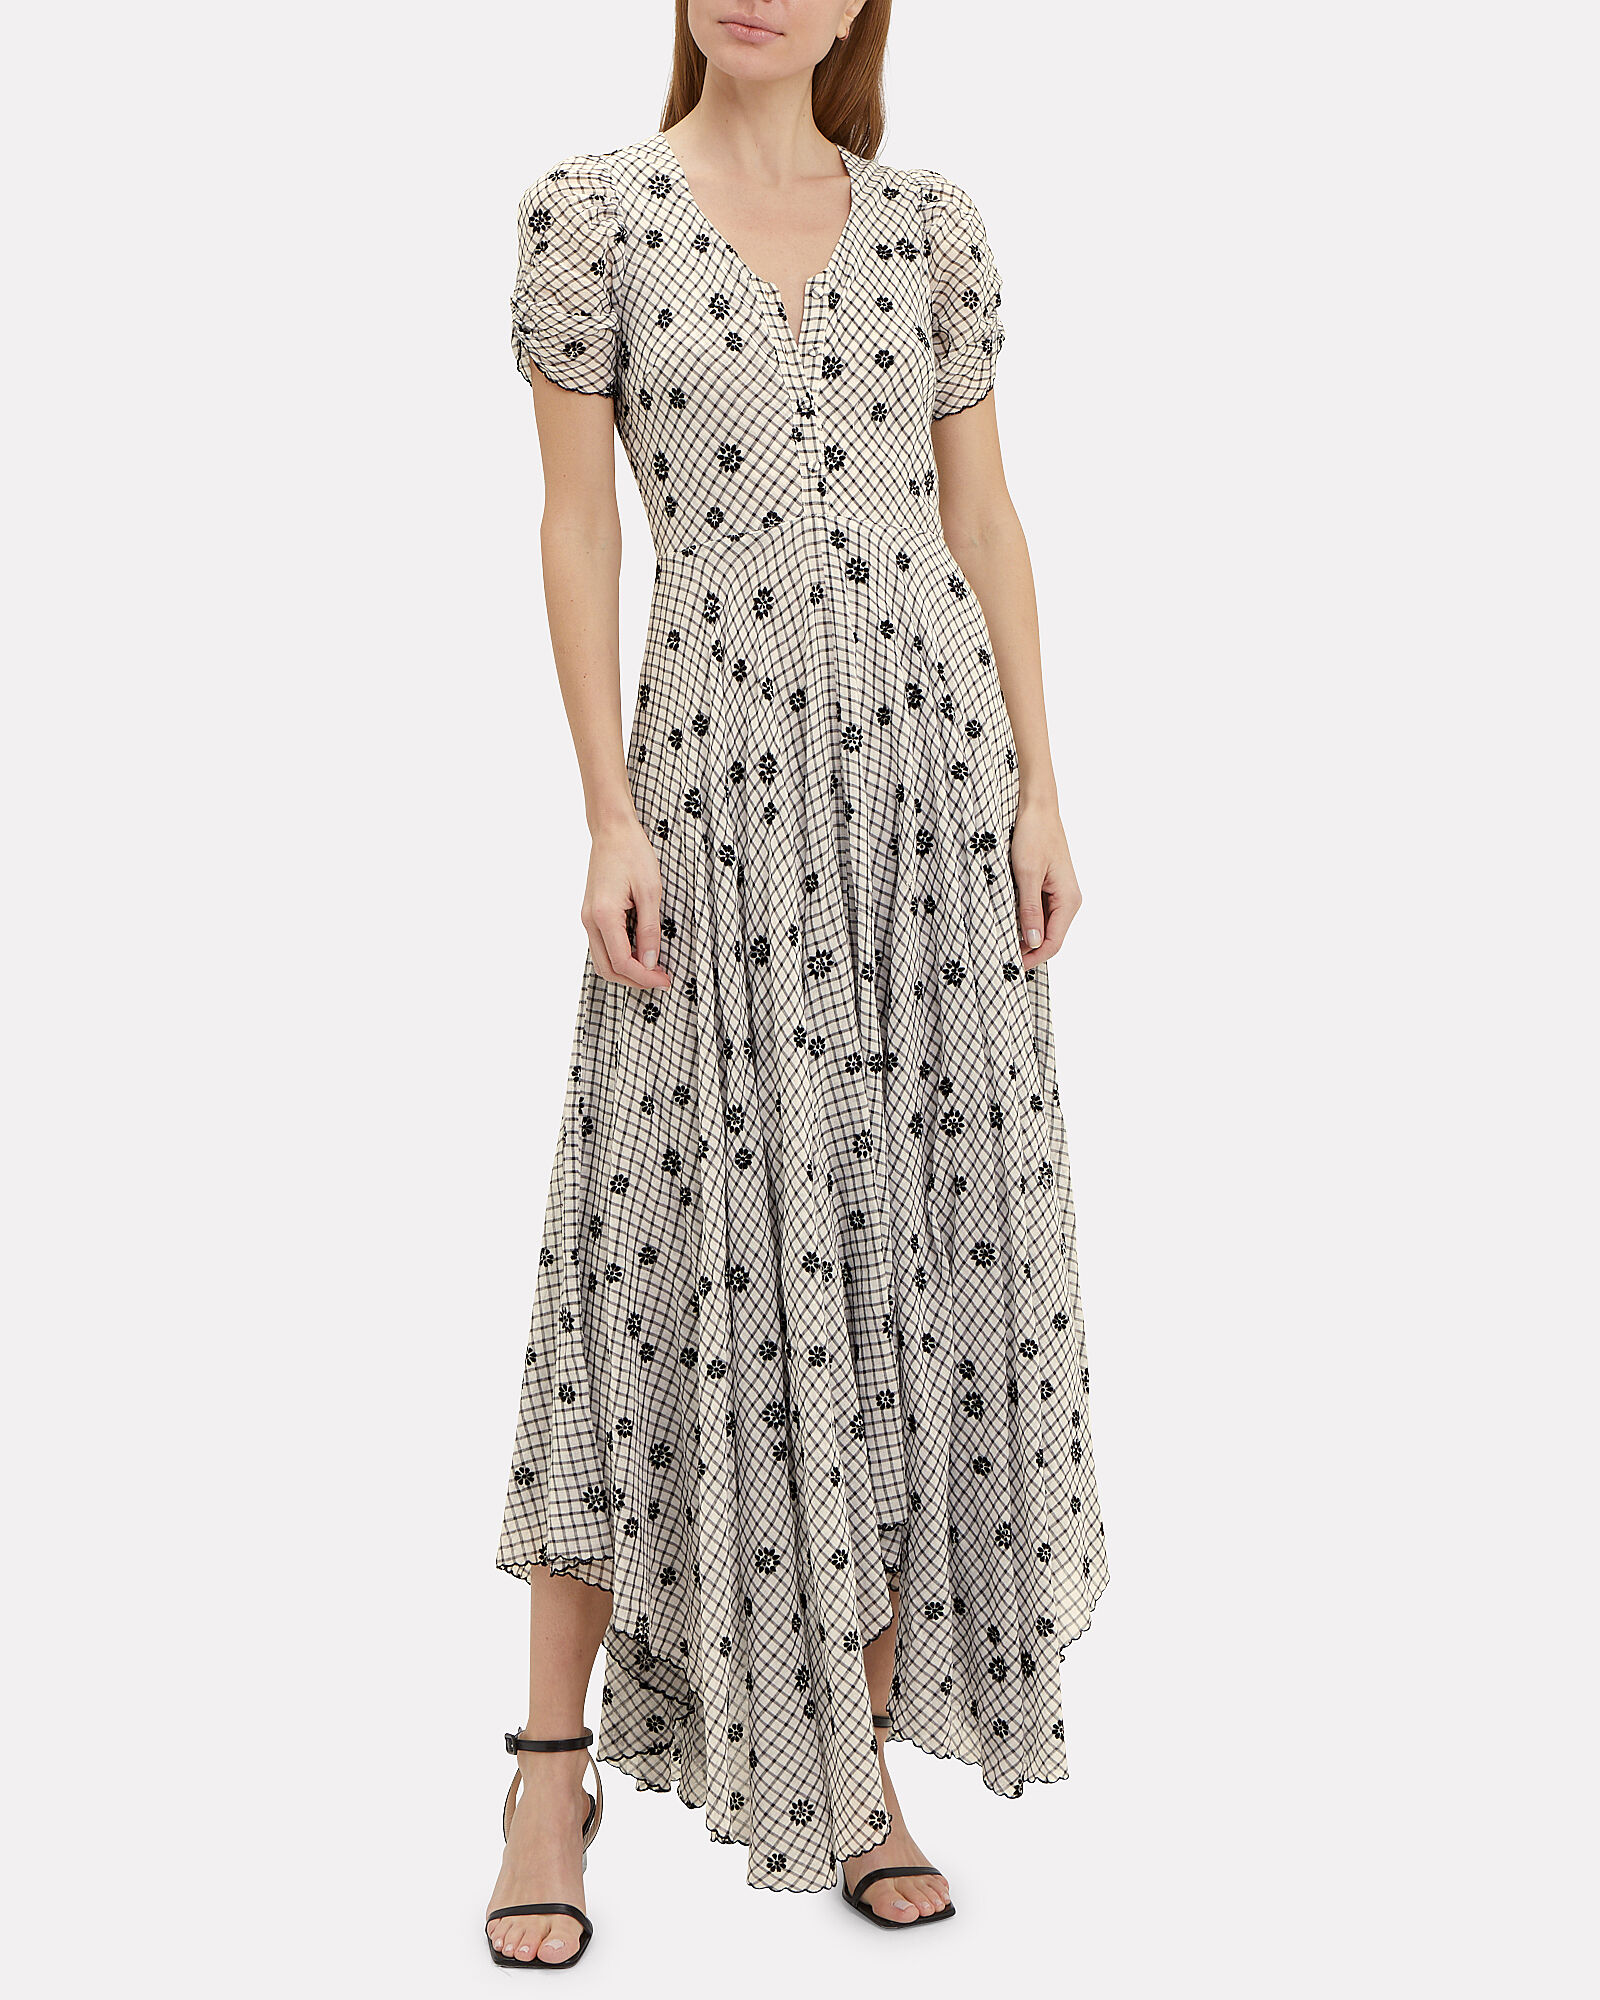 Coraline Gingham Embroidered Maxi Dress, MULTI, hi-res